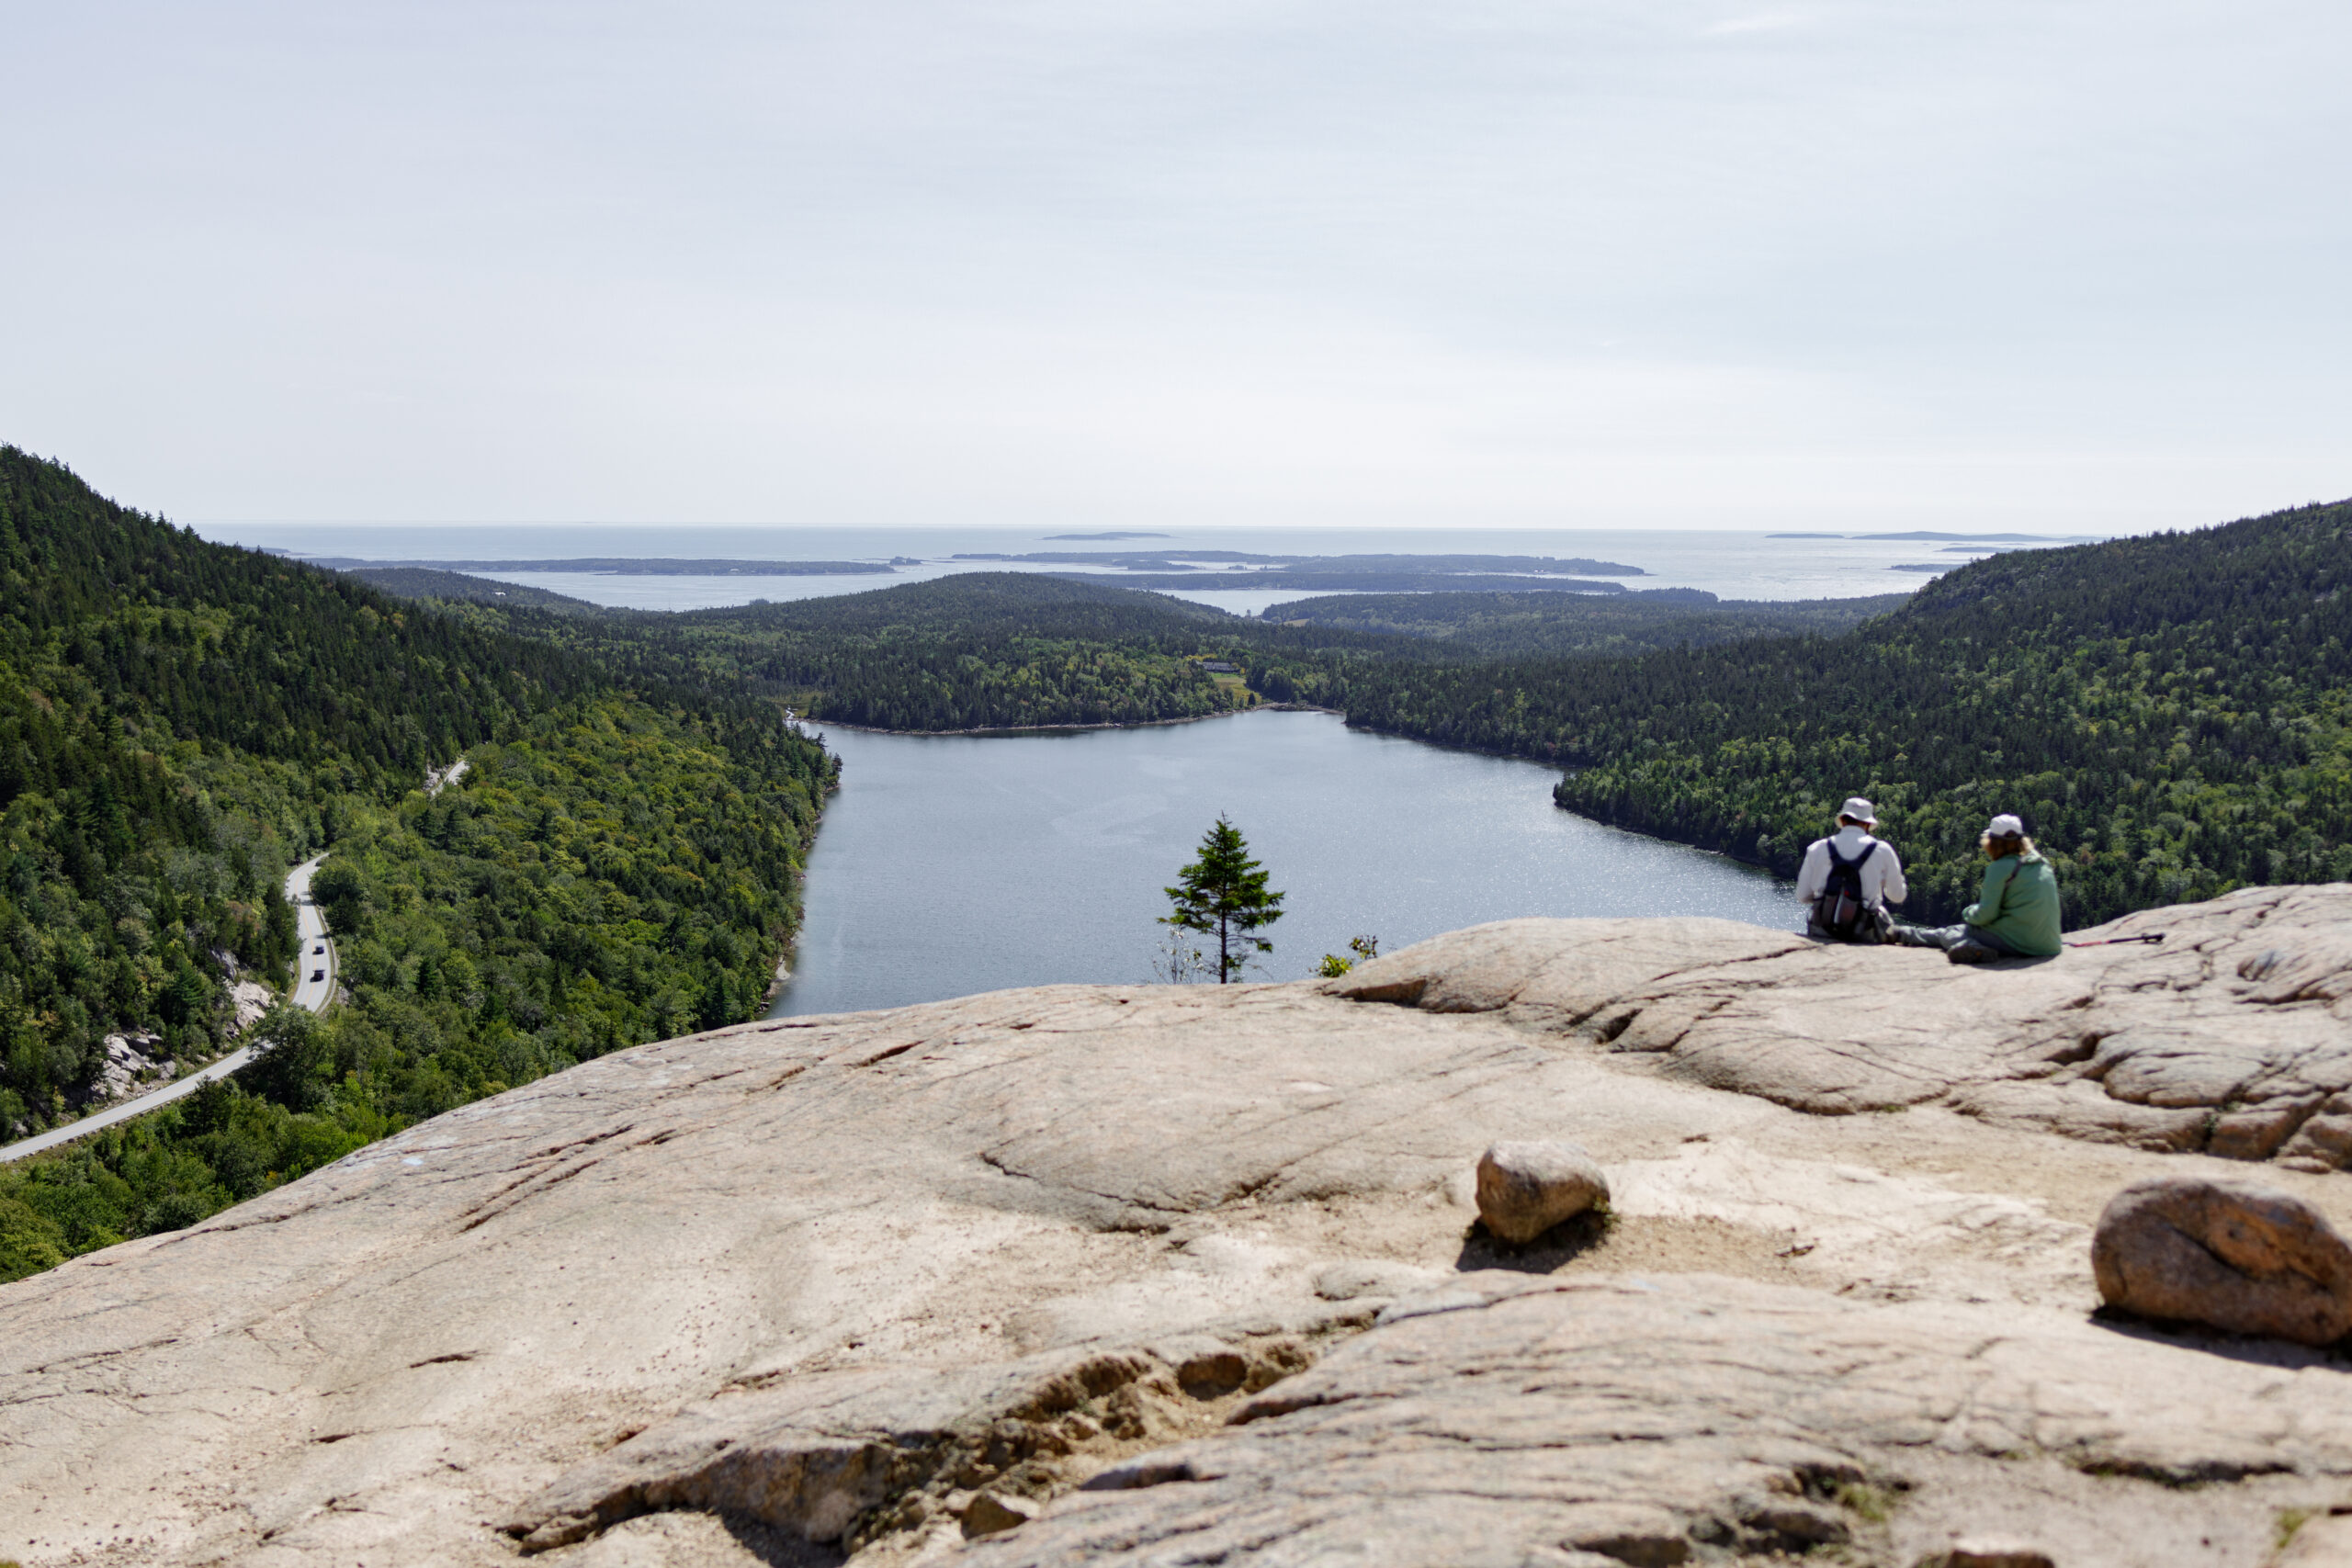 best hikes in acadia national park - two people sit on the end of a large rock overlooking green mountains and a still lake